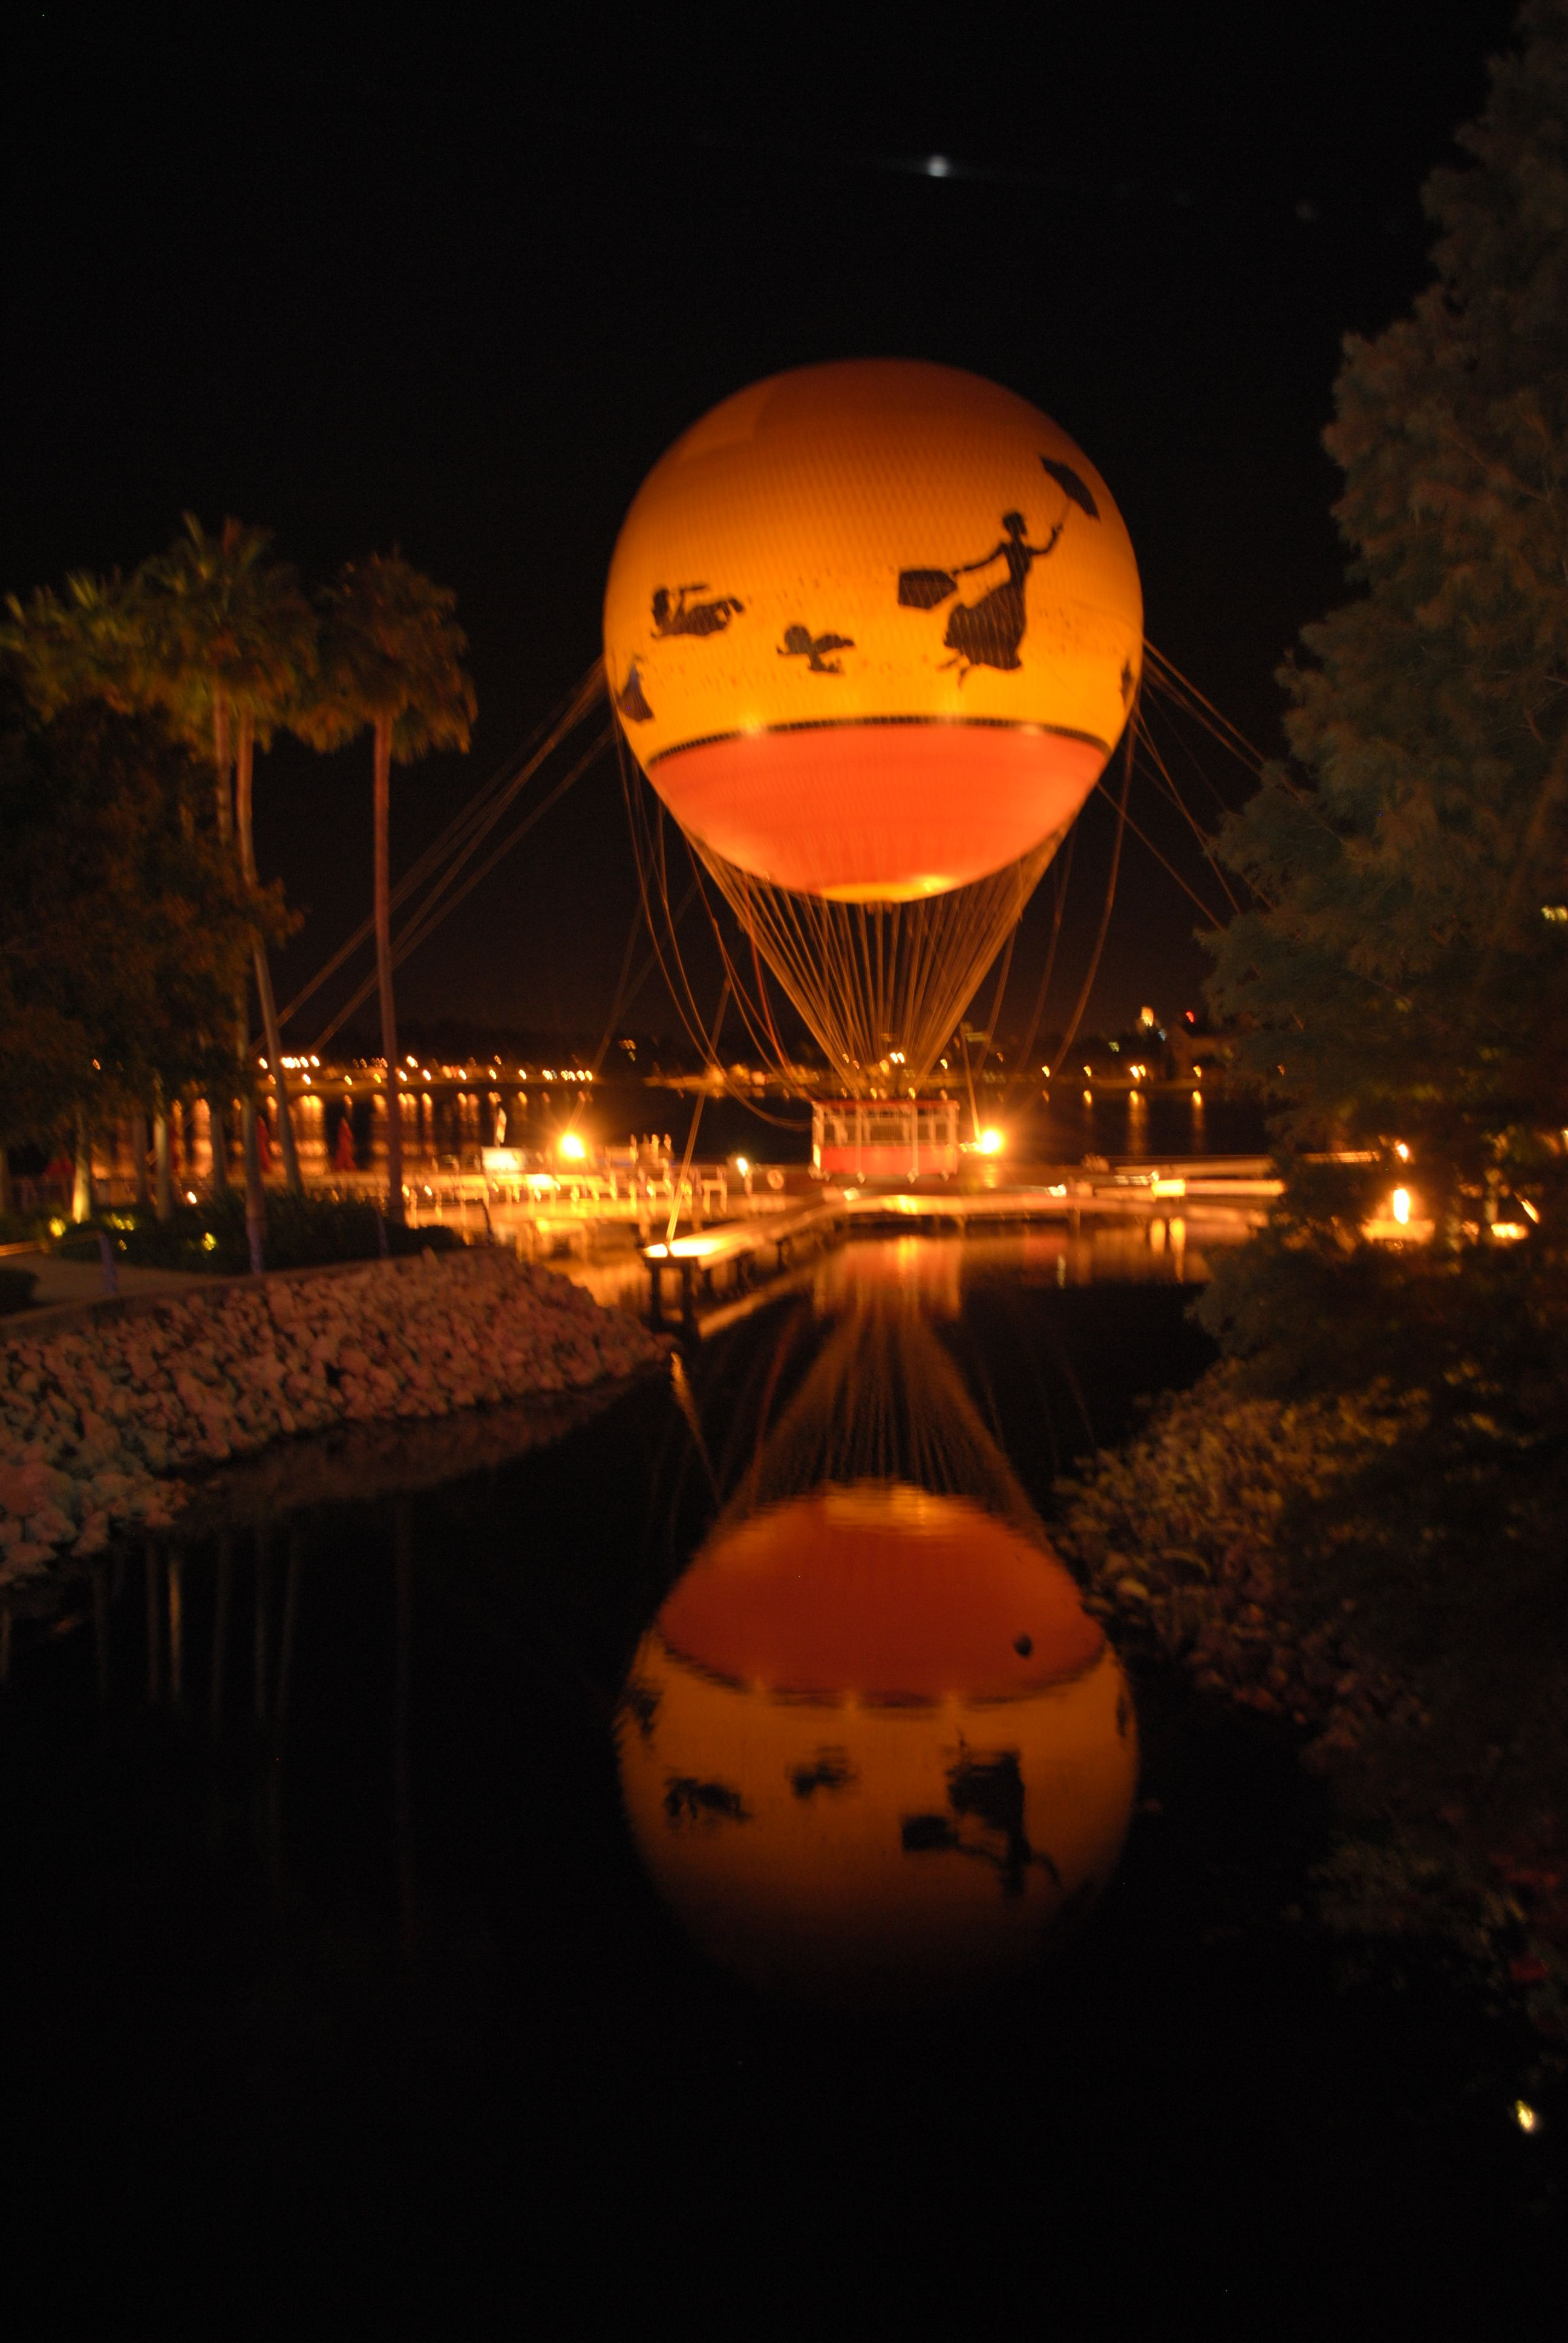 Bucket list To ride the hot air balloon over Disney at